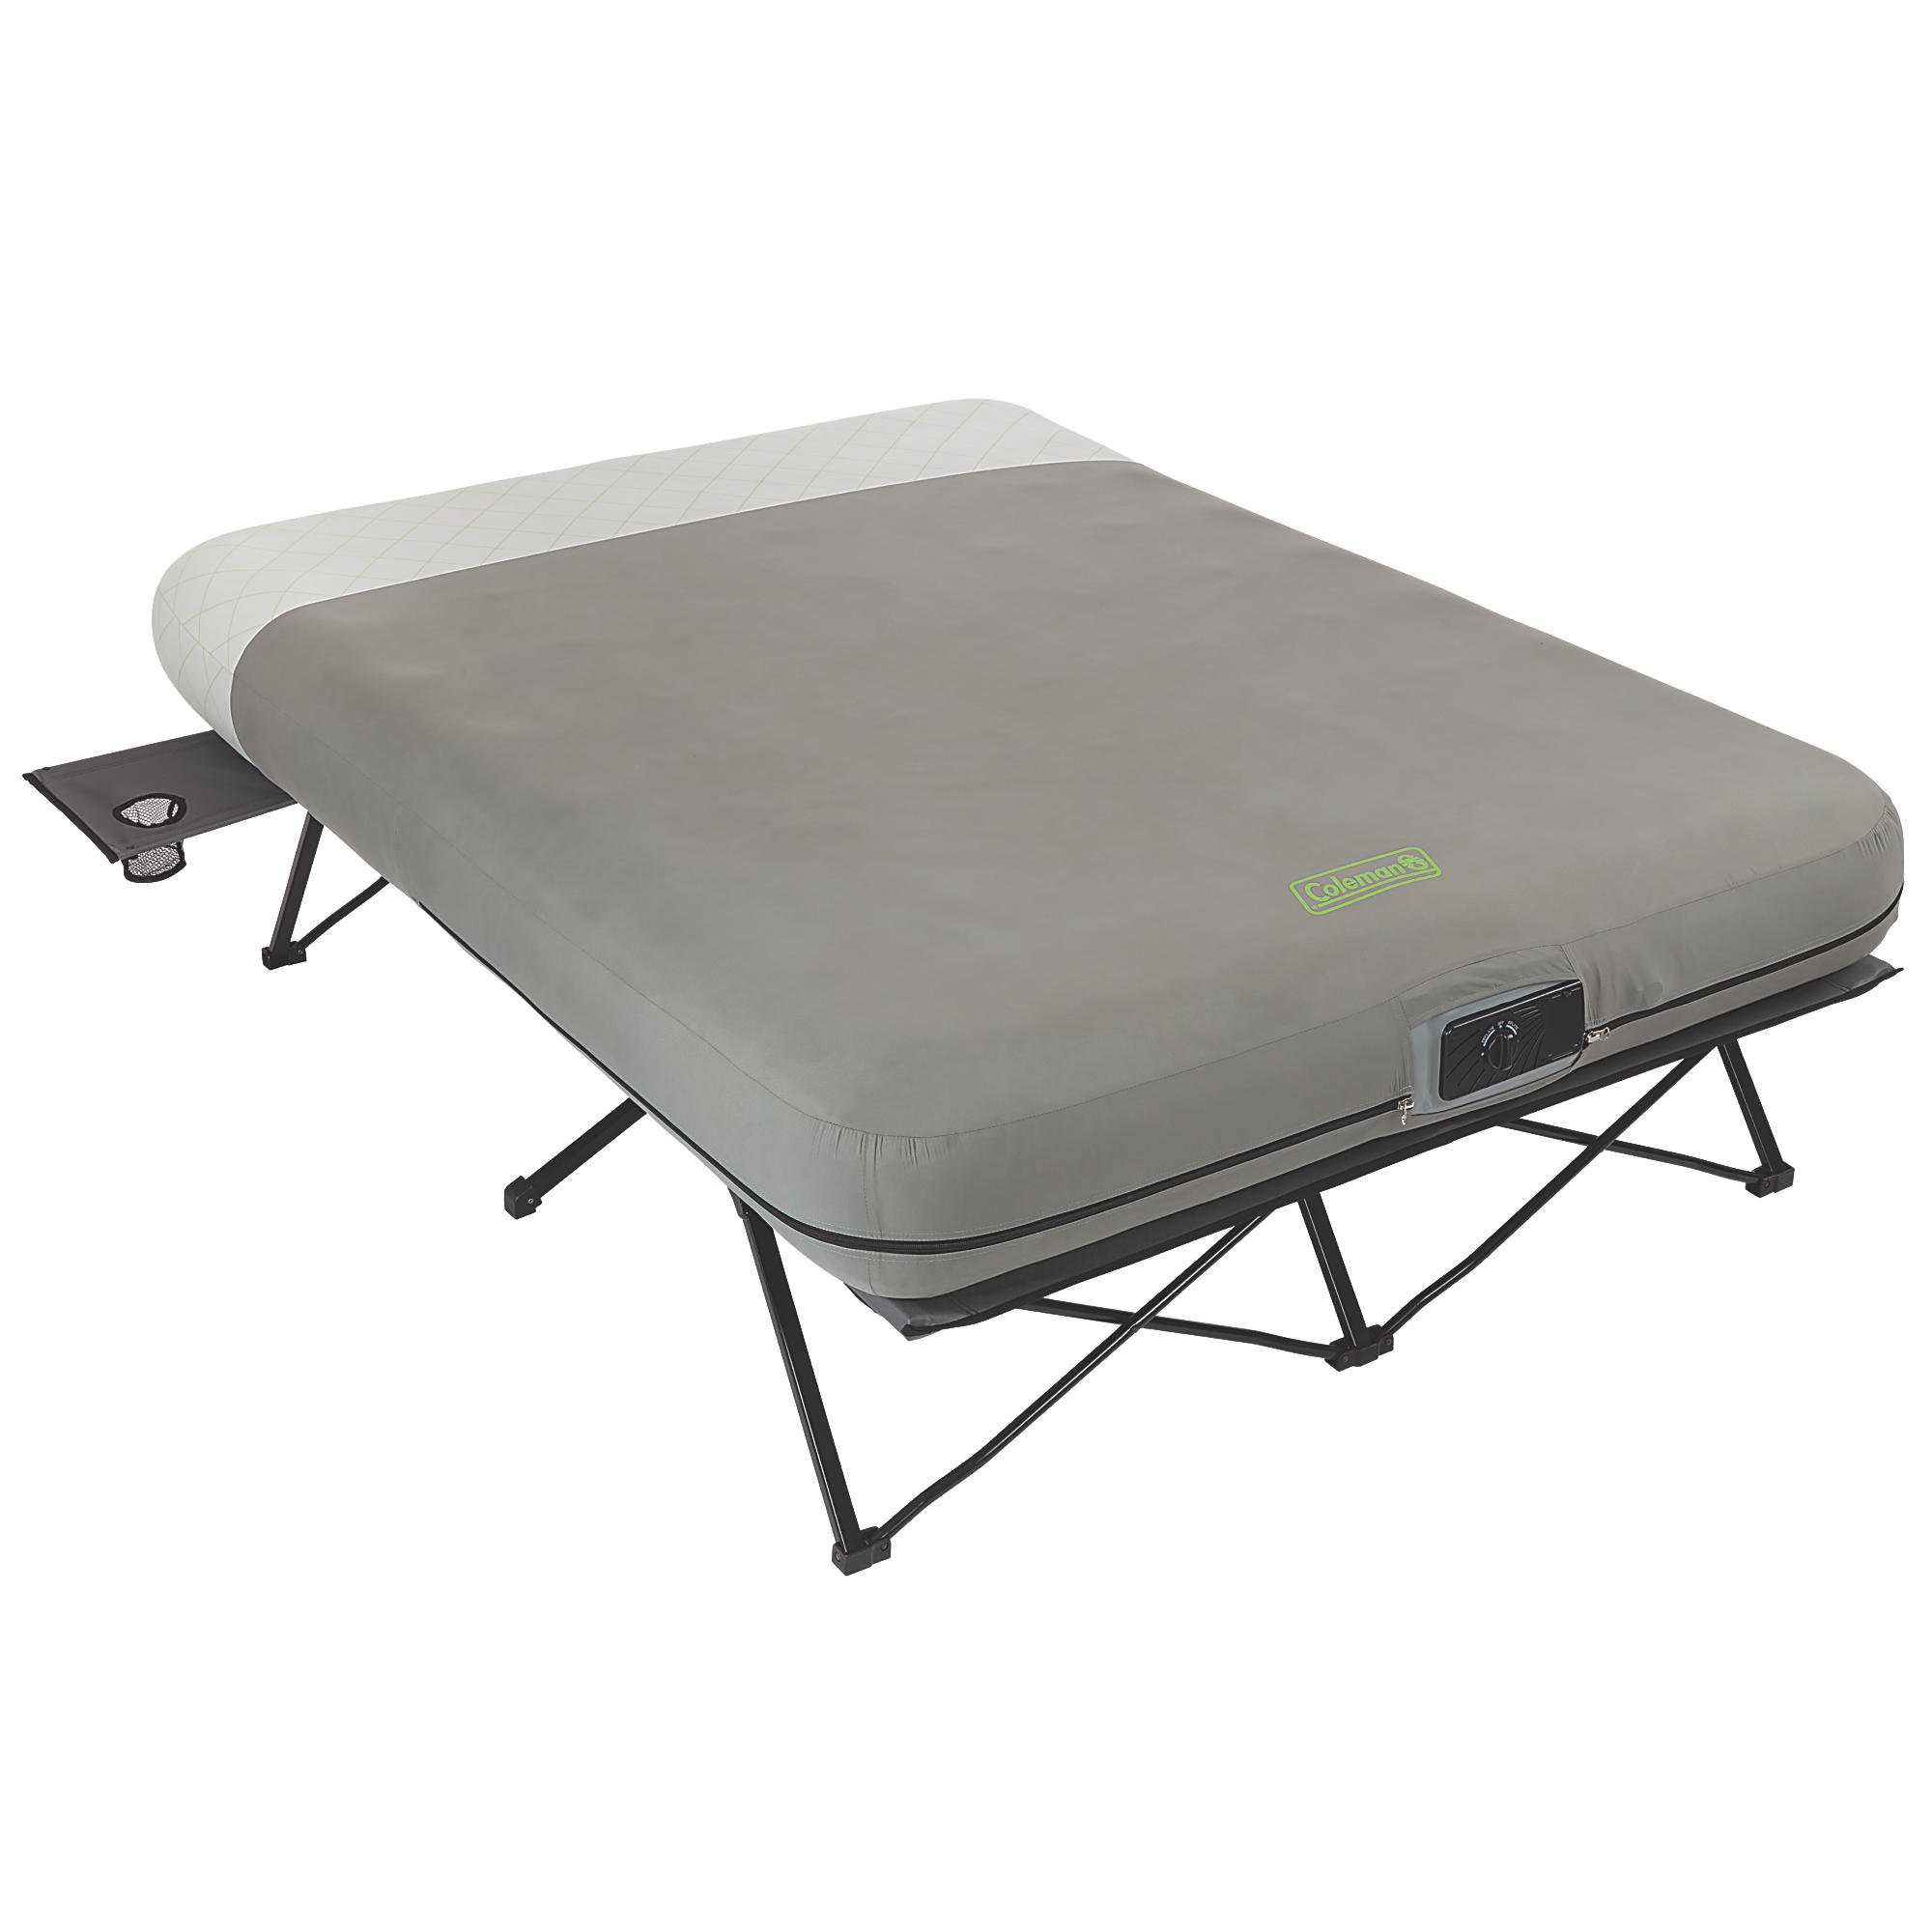 Queen Air Mattress Cot Coleman Queen Frame Airbed Cot With Side Tables And Built In Pump 2000019460